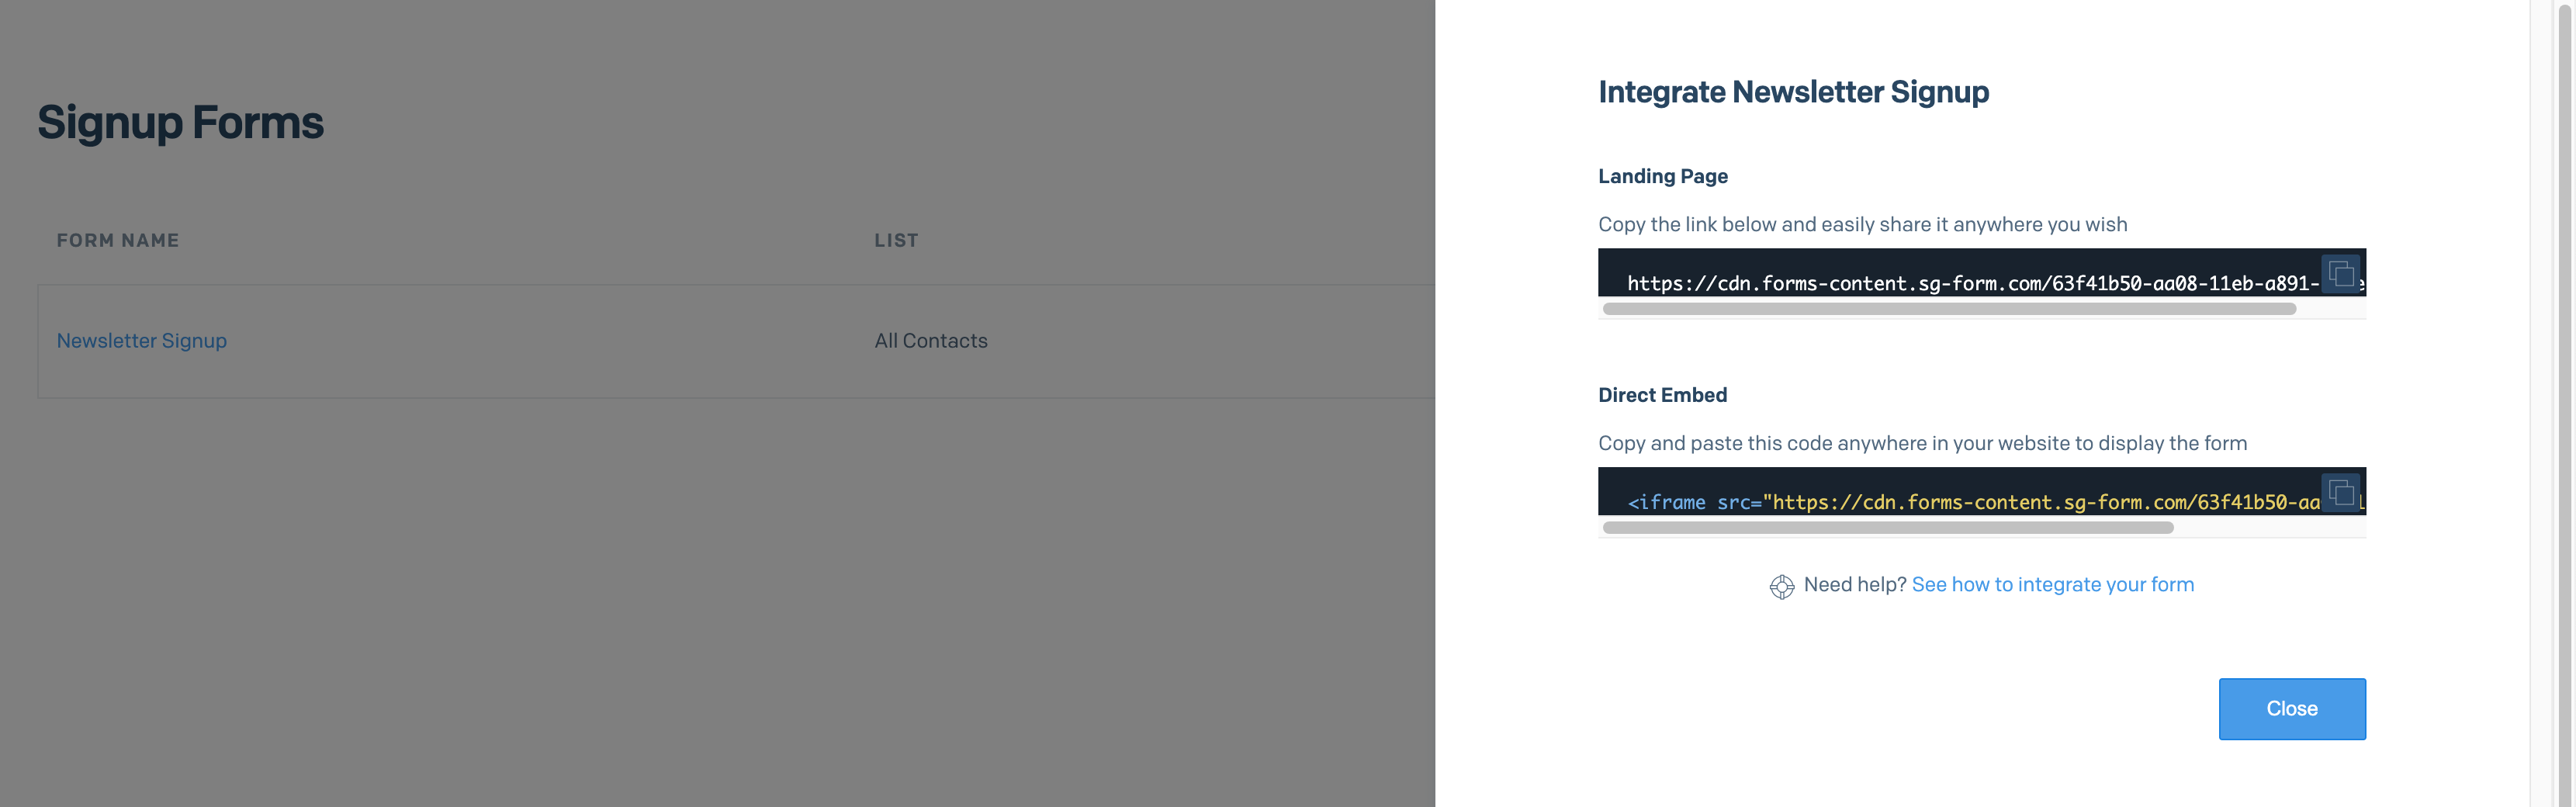 The signup form's share modal